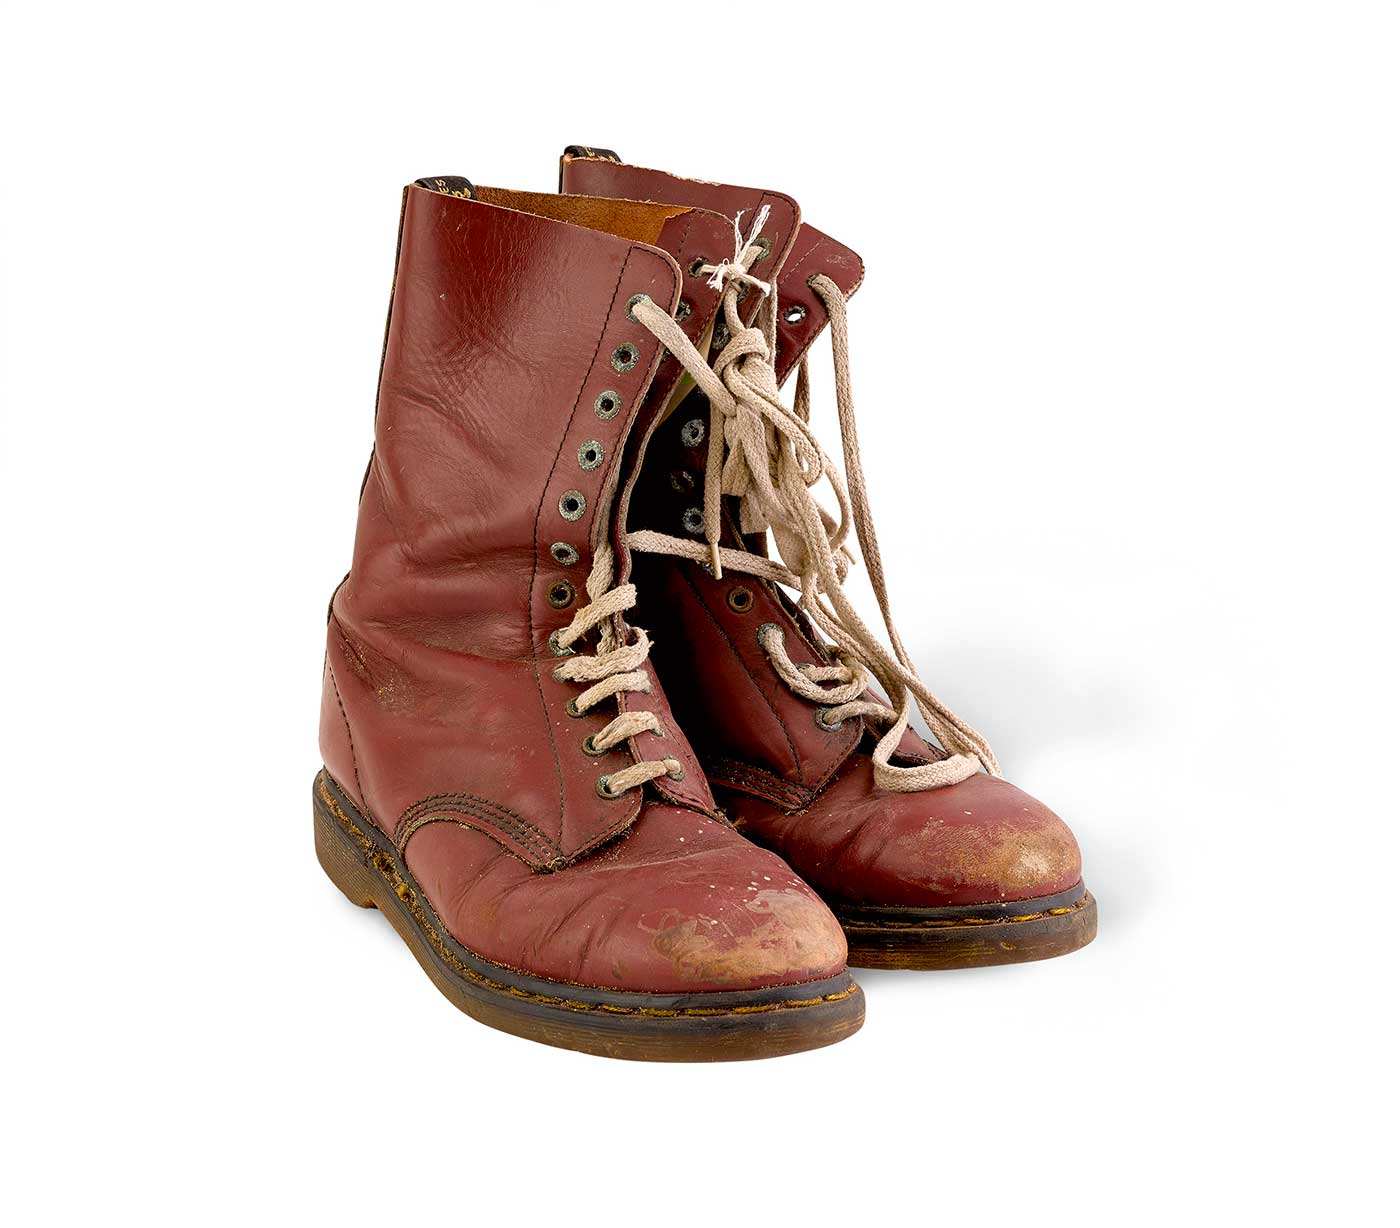 A pair of maroon leather Doc Martens boots - click to view larger image